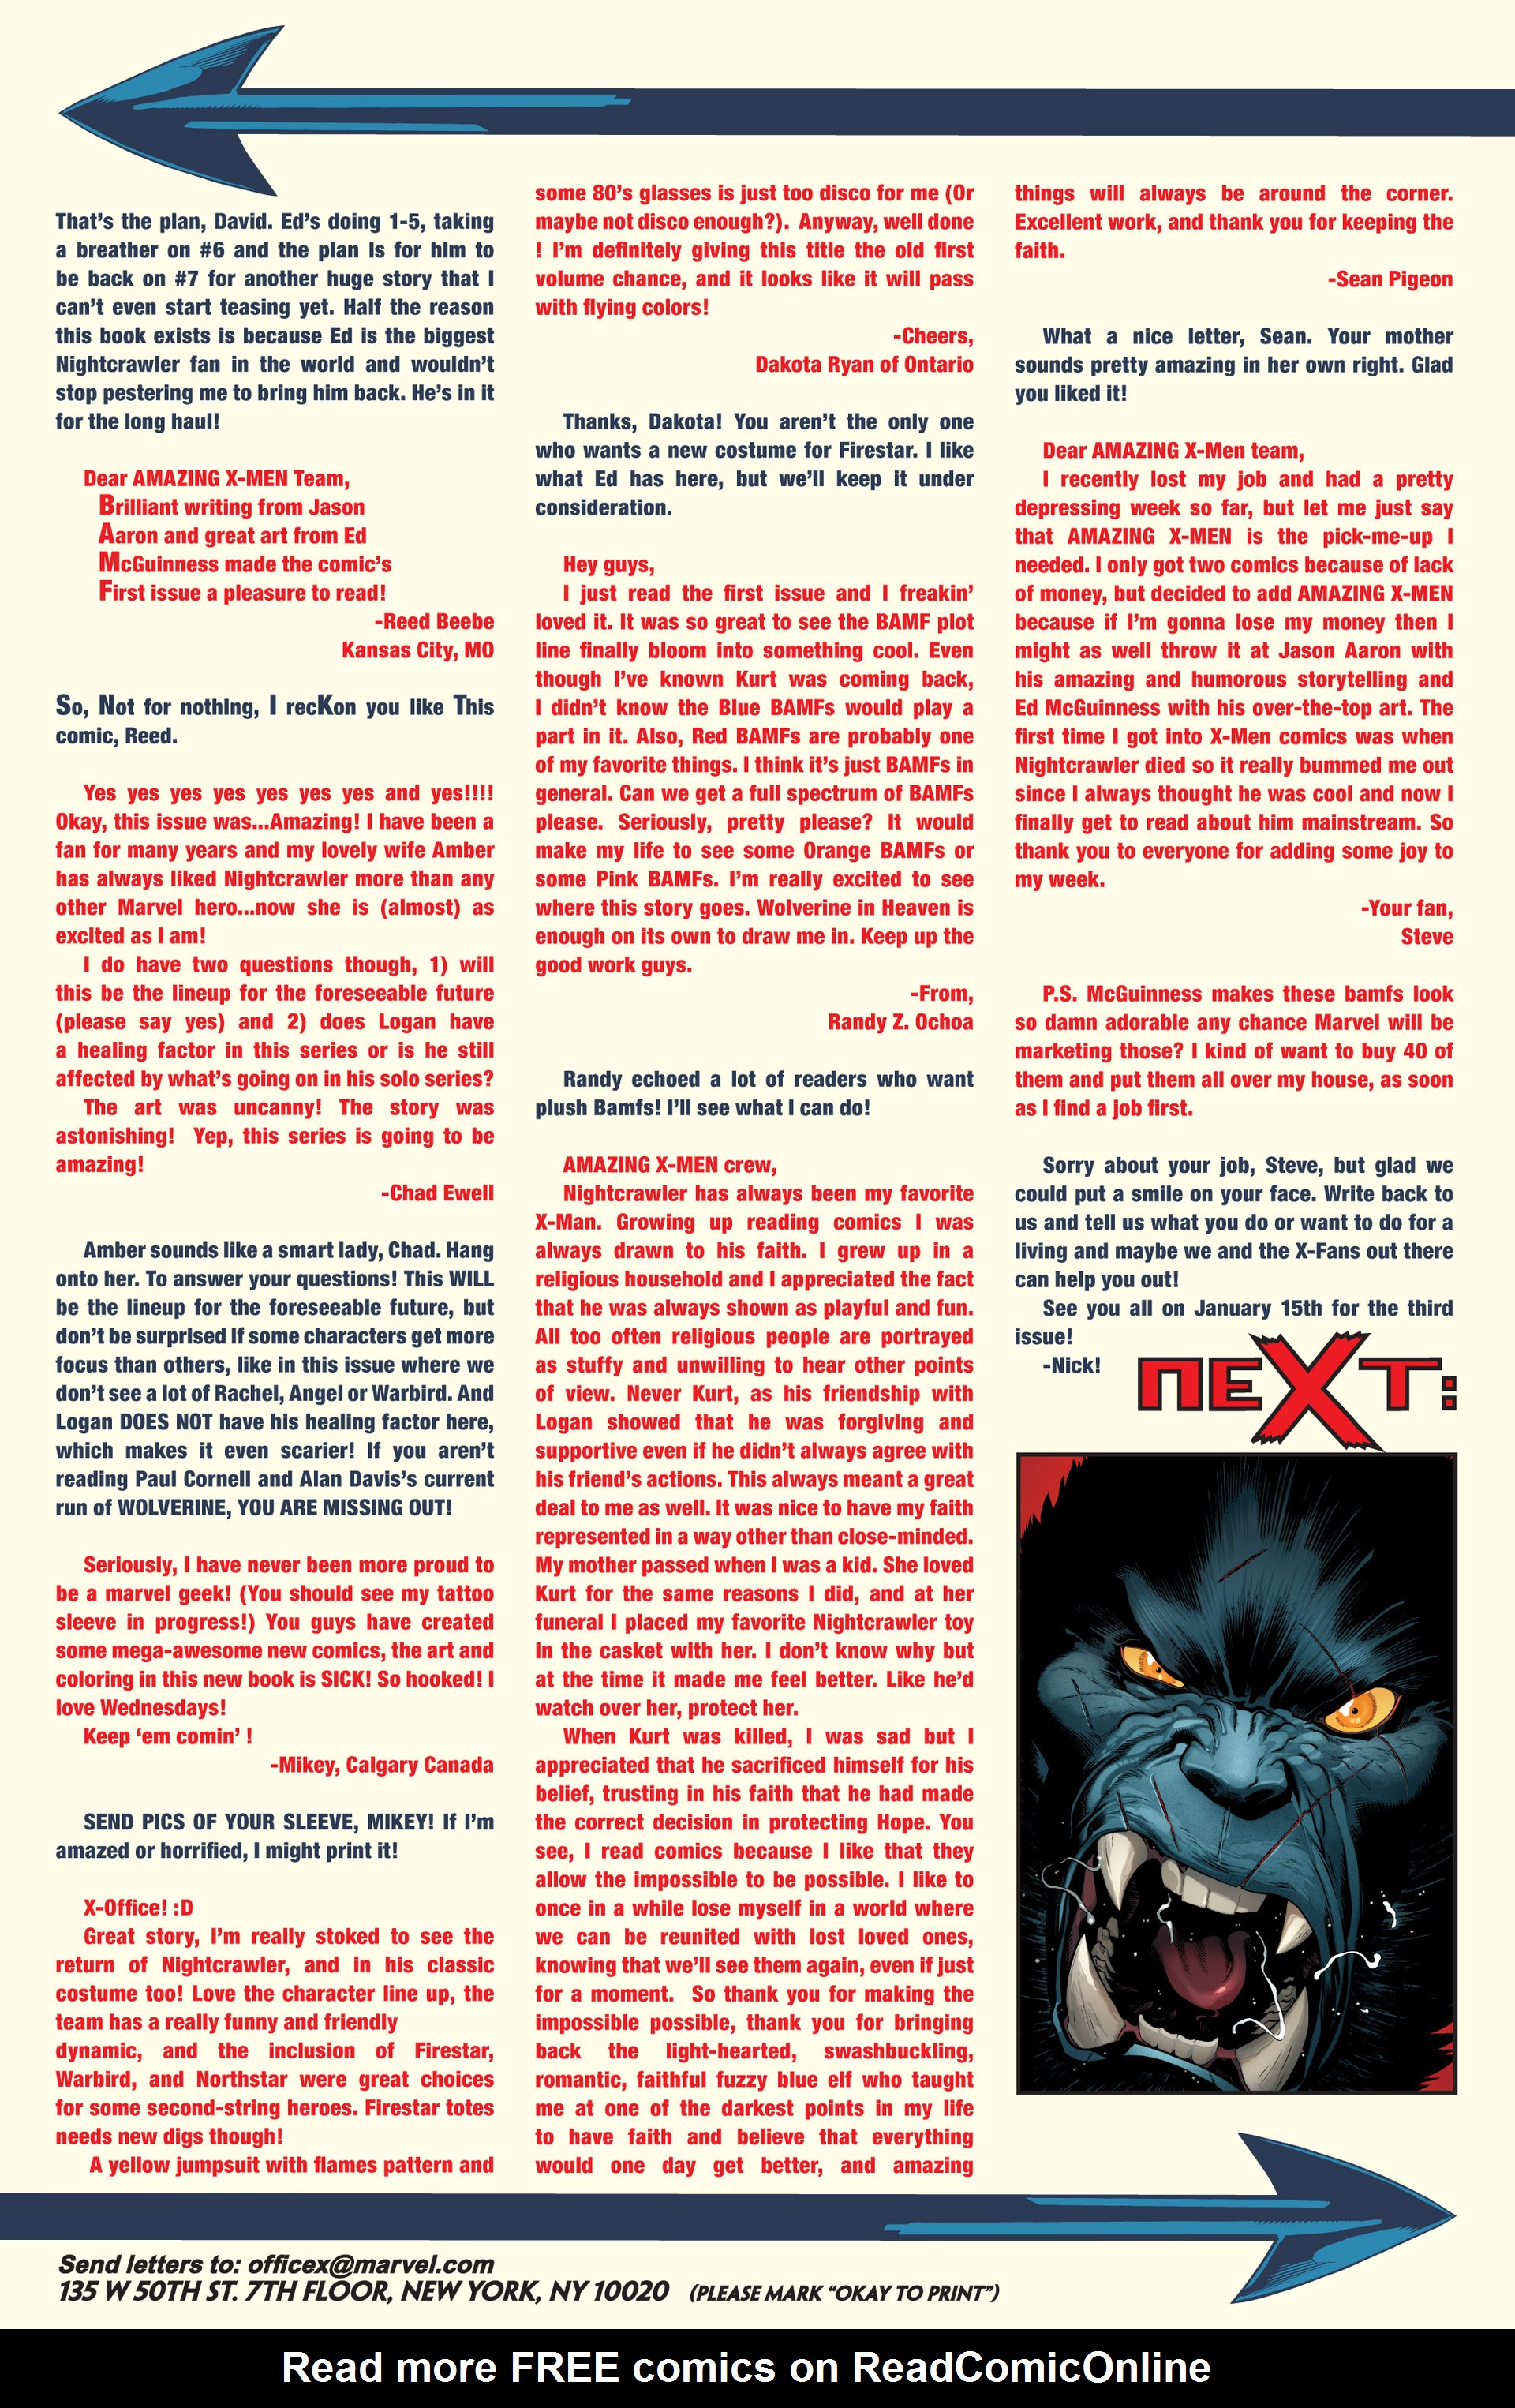 Read online Amazing X-Men (2014) comic -  Issue #2 - 22